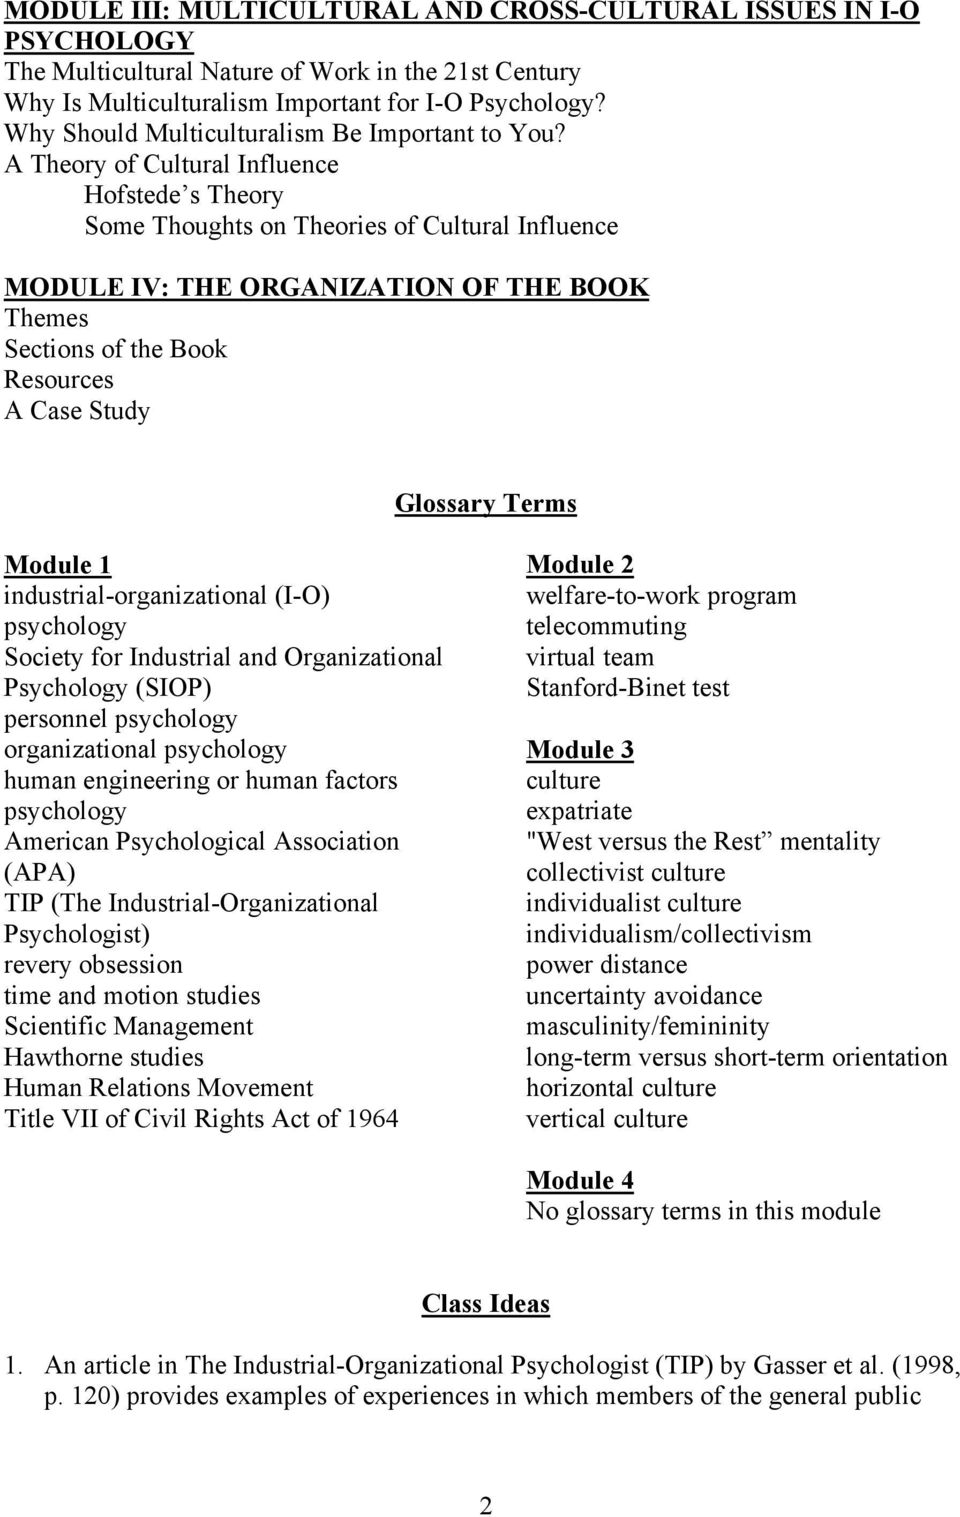 A Theory of Cultural Influence Hofstede s Theory Some Thoughts on Theories of Cultural Influence MODULE IV: THE ORGANIZATION OF THE BOOK Themes Sections of the Book Resources A Case Study Glossary